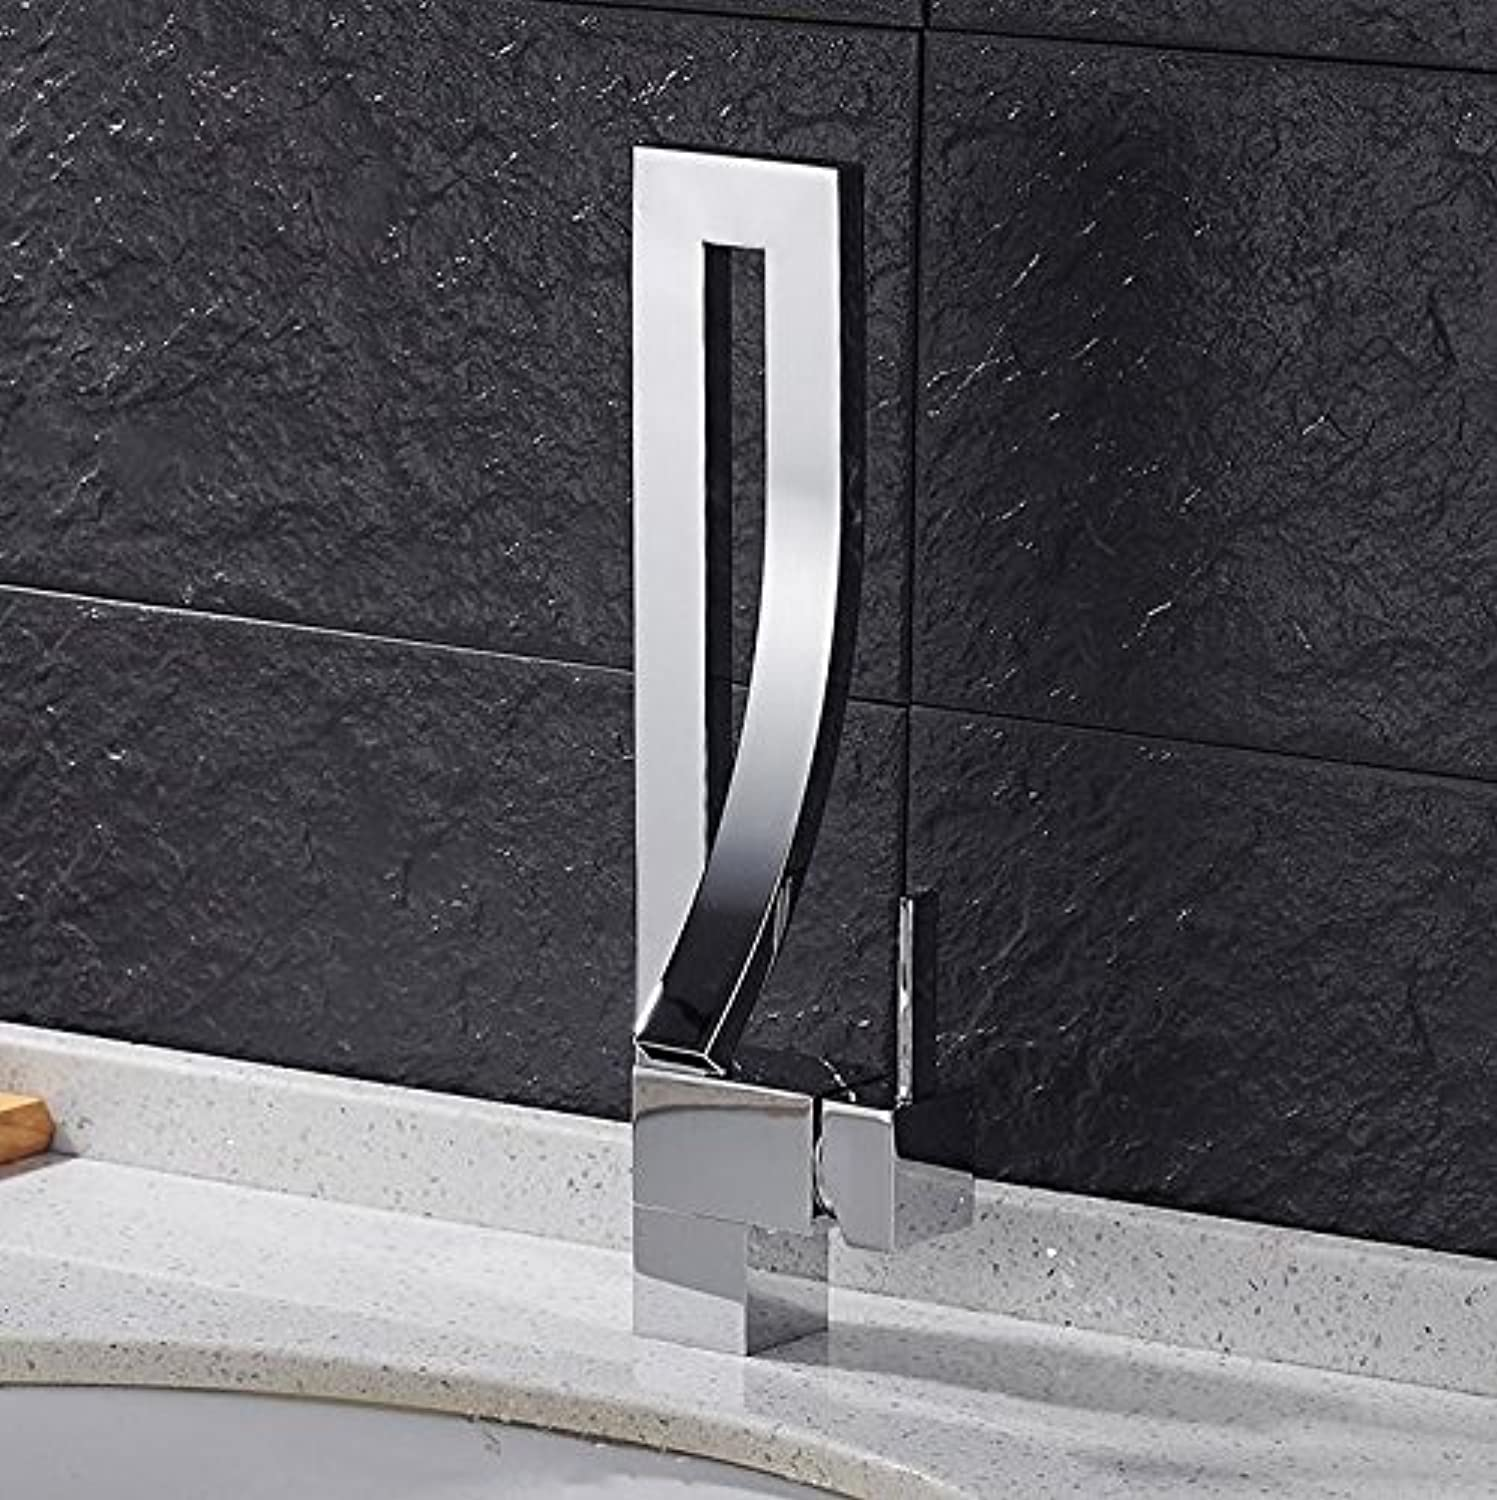 Mkkwp Basin Faucet Single Handle Waterfall Basin Mixer Tap Hot And Cold Bathroom Faucet Sink Waterfall Faucet